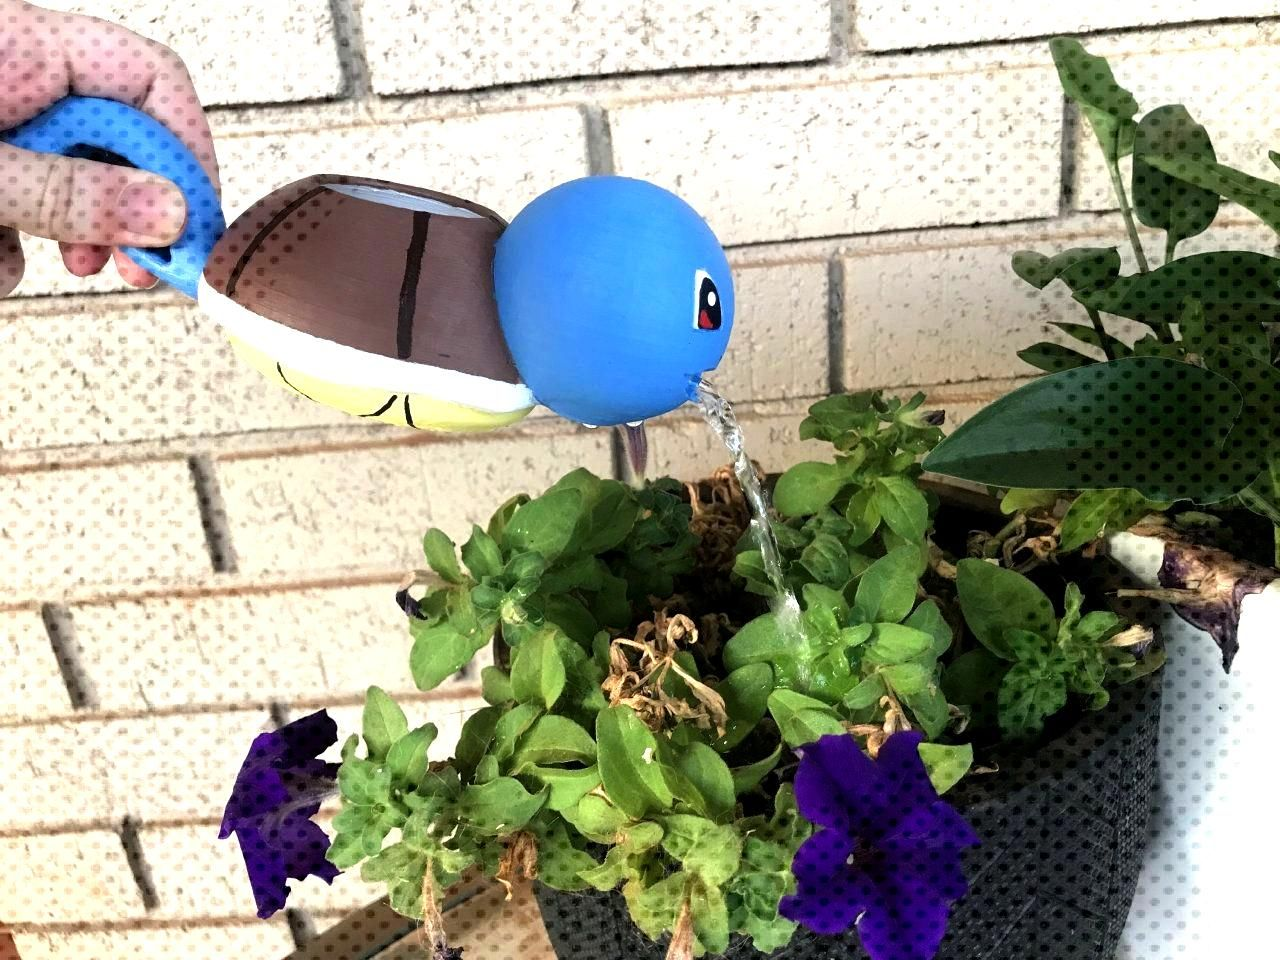 3D Printed Pokemon Watering Cans made by Jessica Geale -